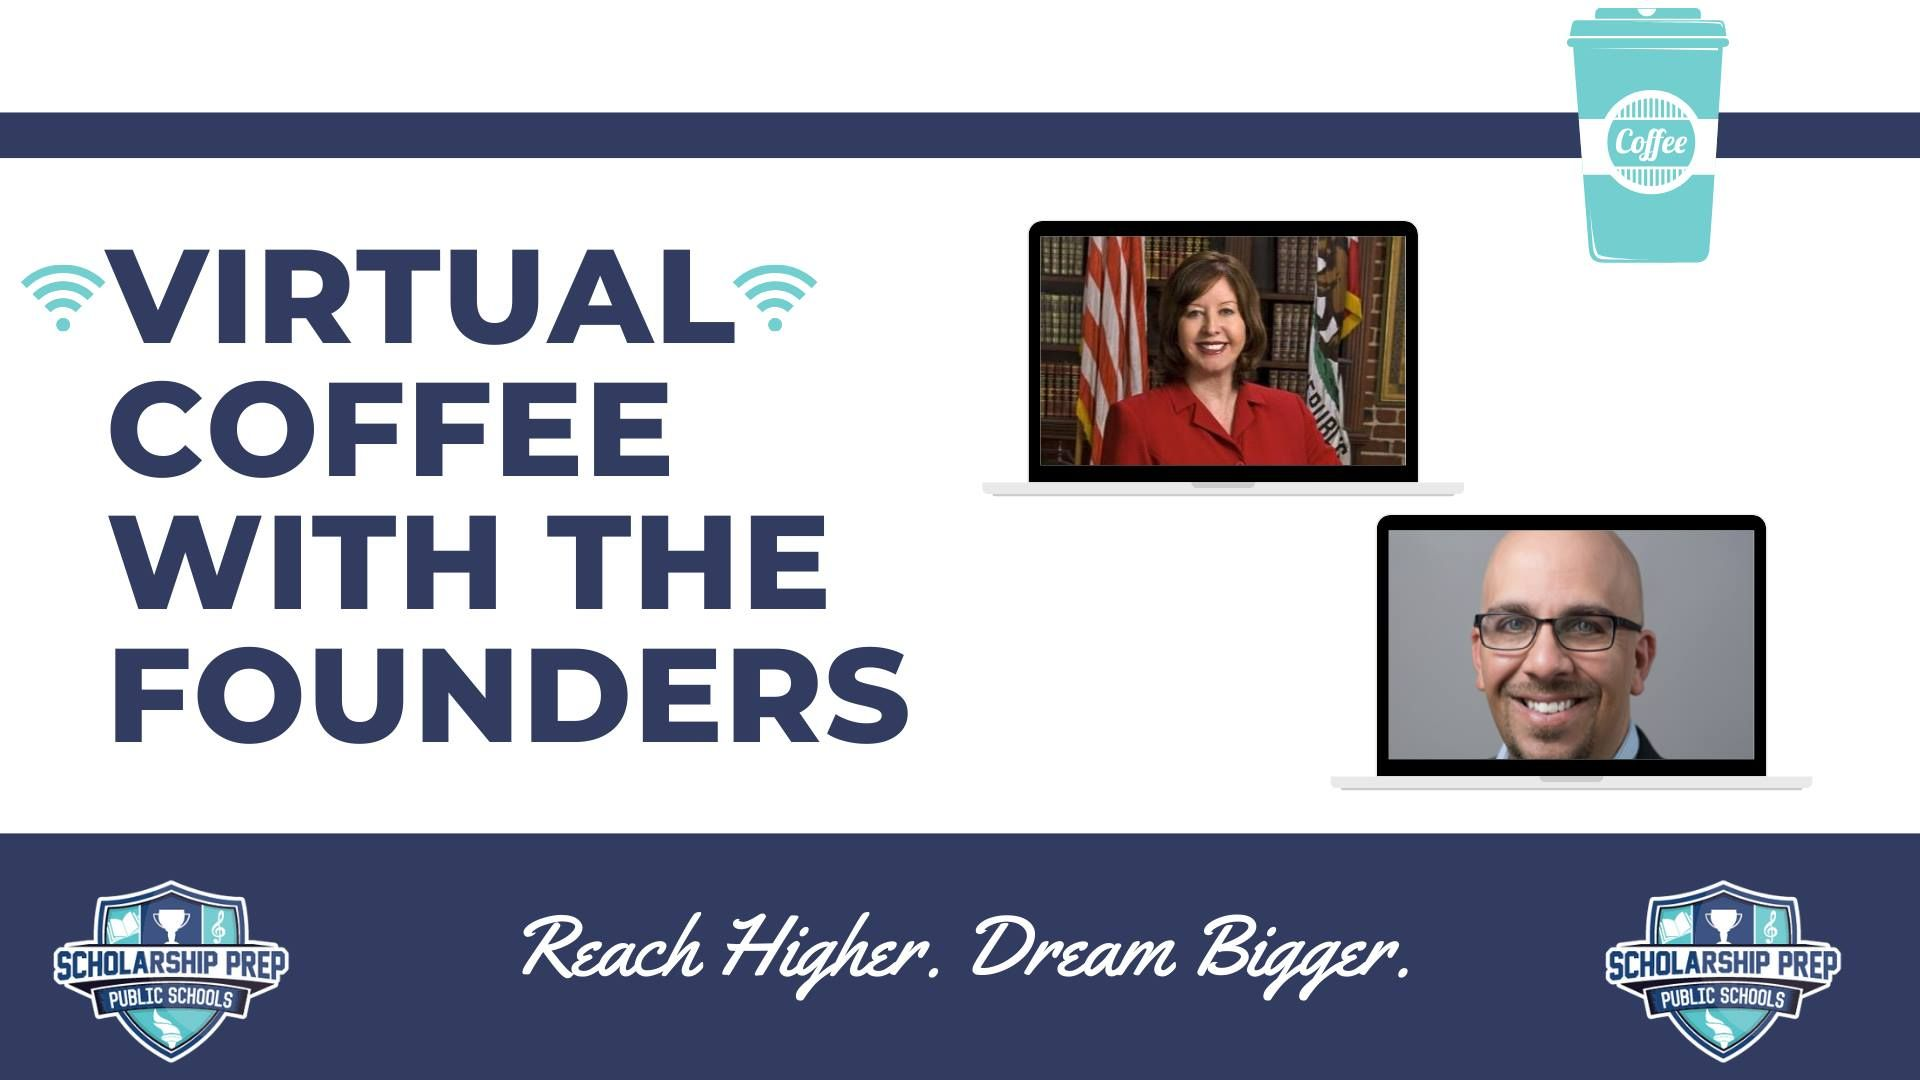 Virtual Coffee With The Founders